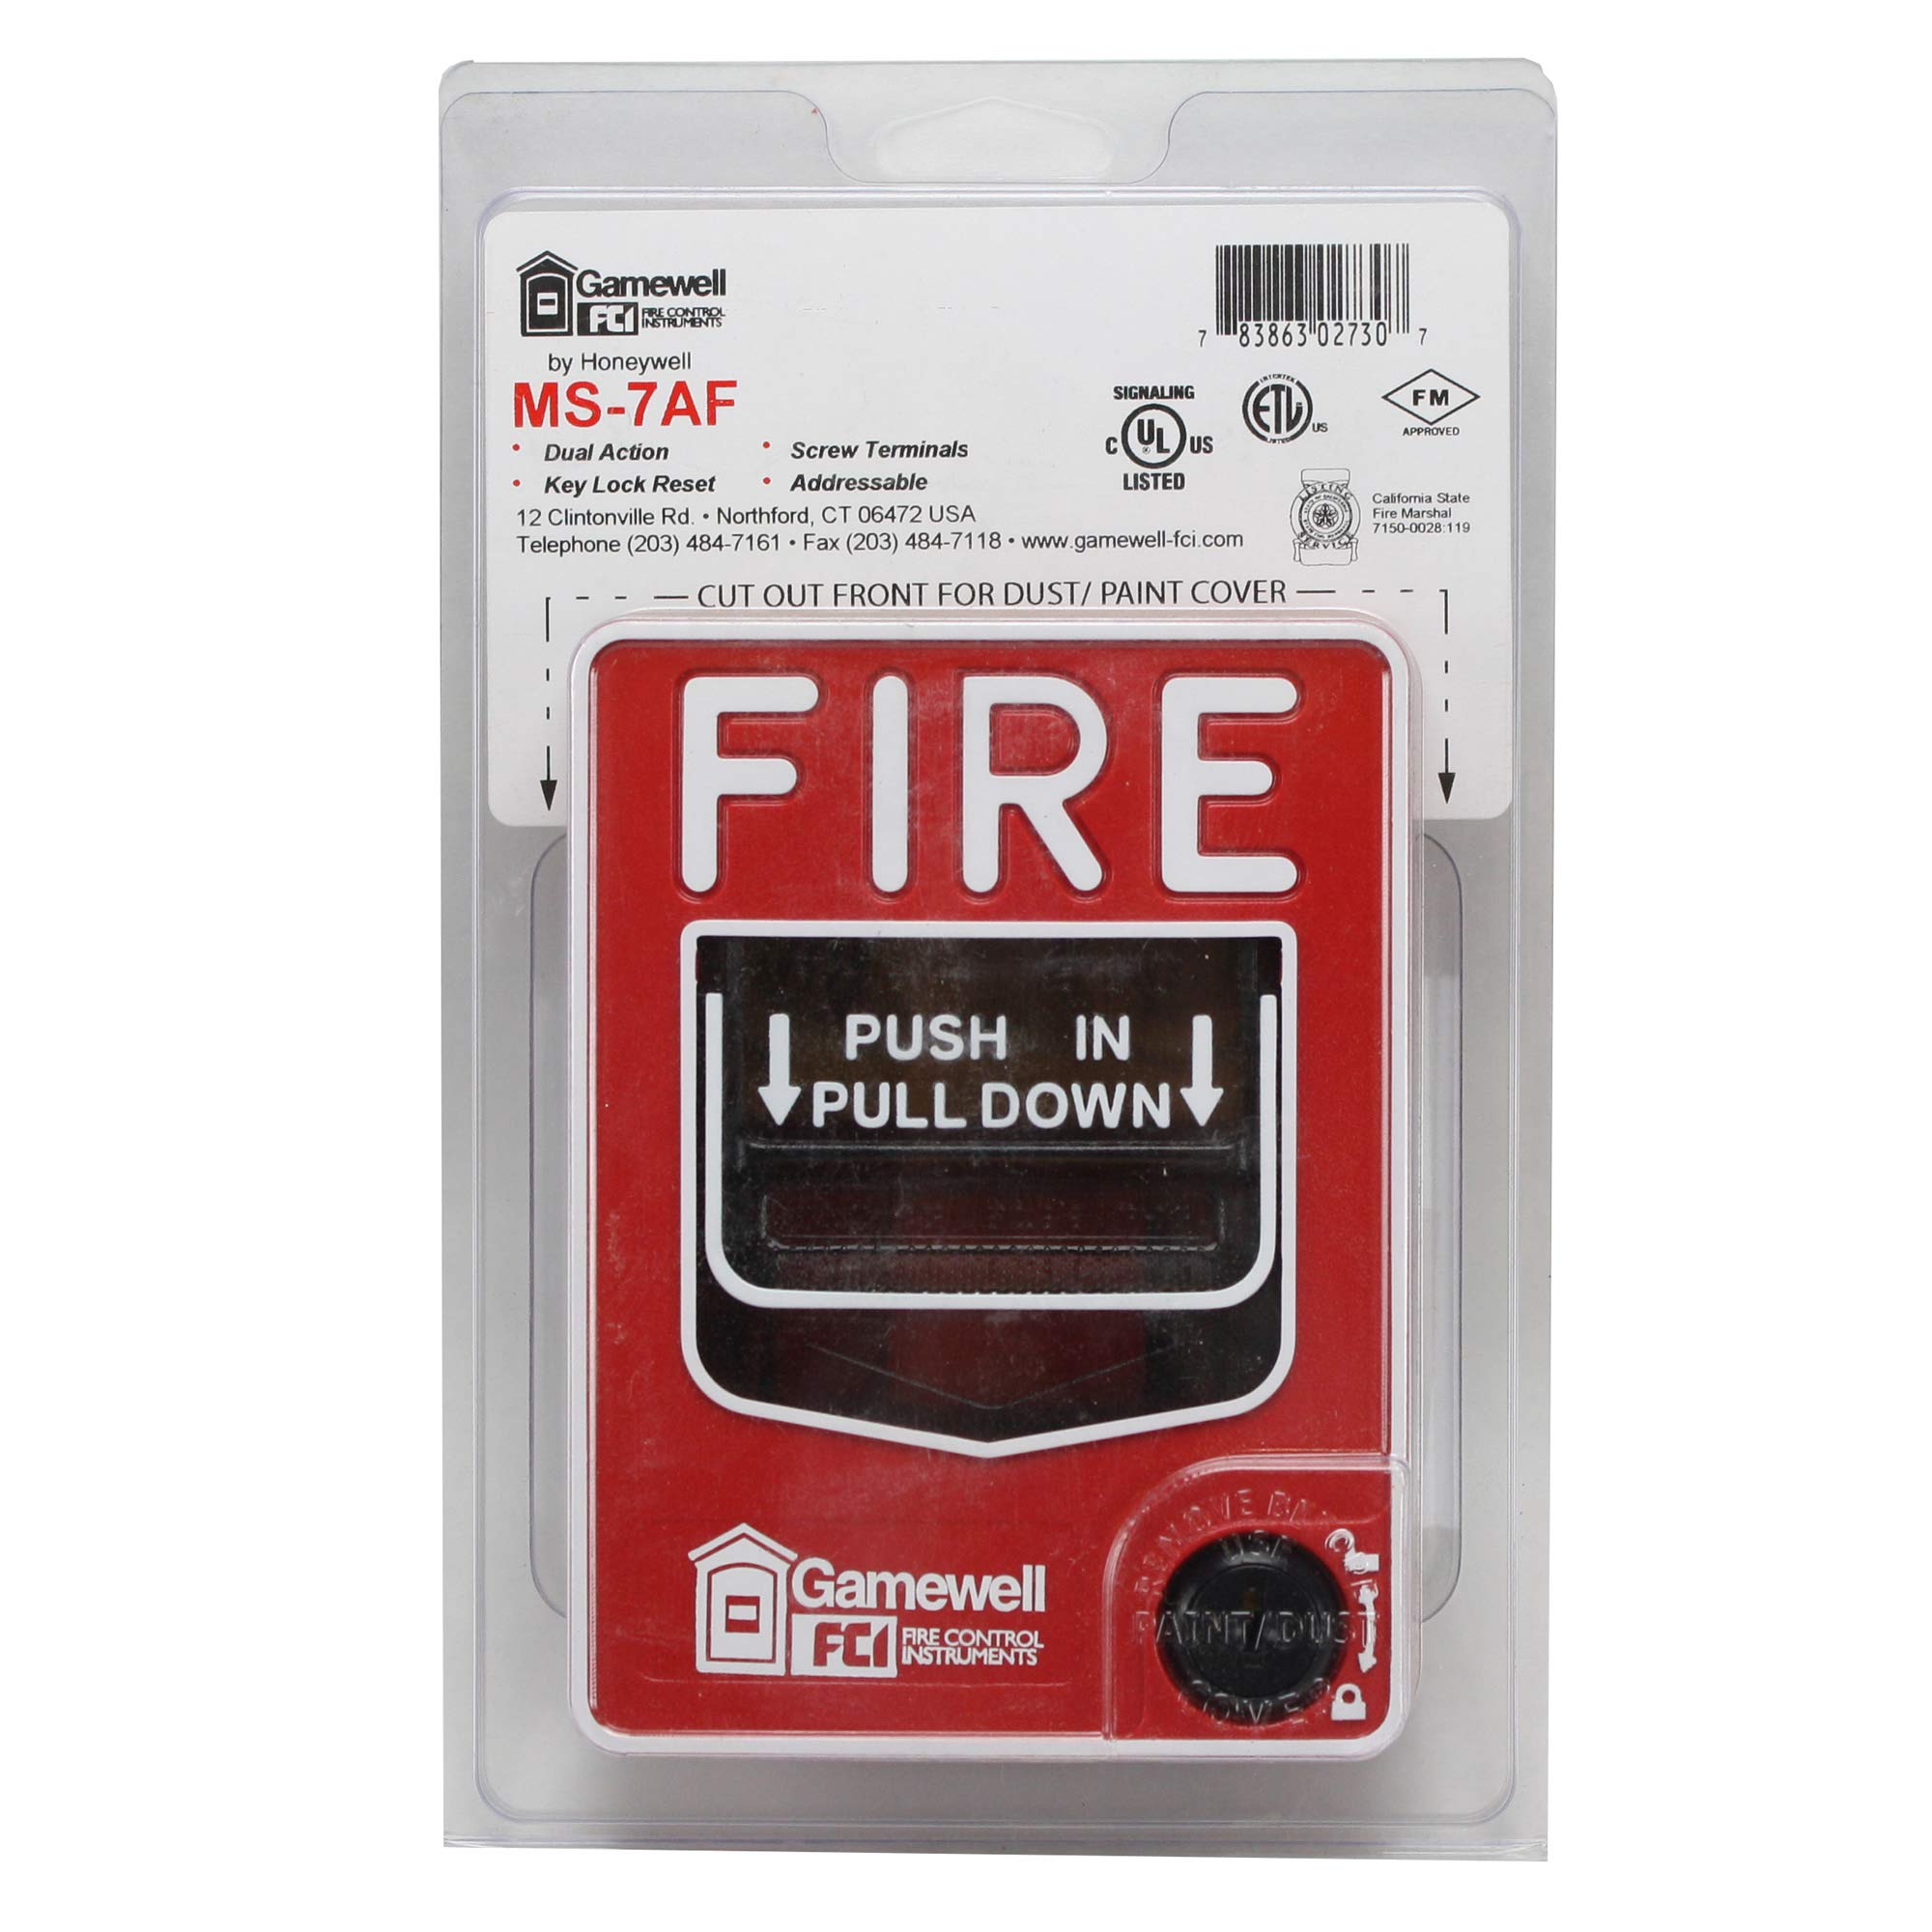 Gamewell-FCI MS-7AF Fire Alarm Dual Action Pull Station, Red by Gamewell-FCI